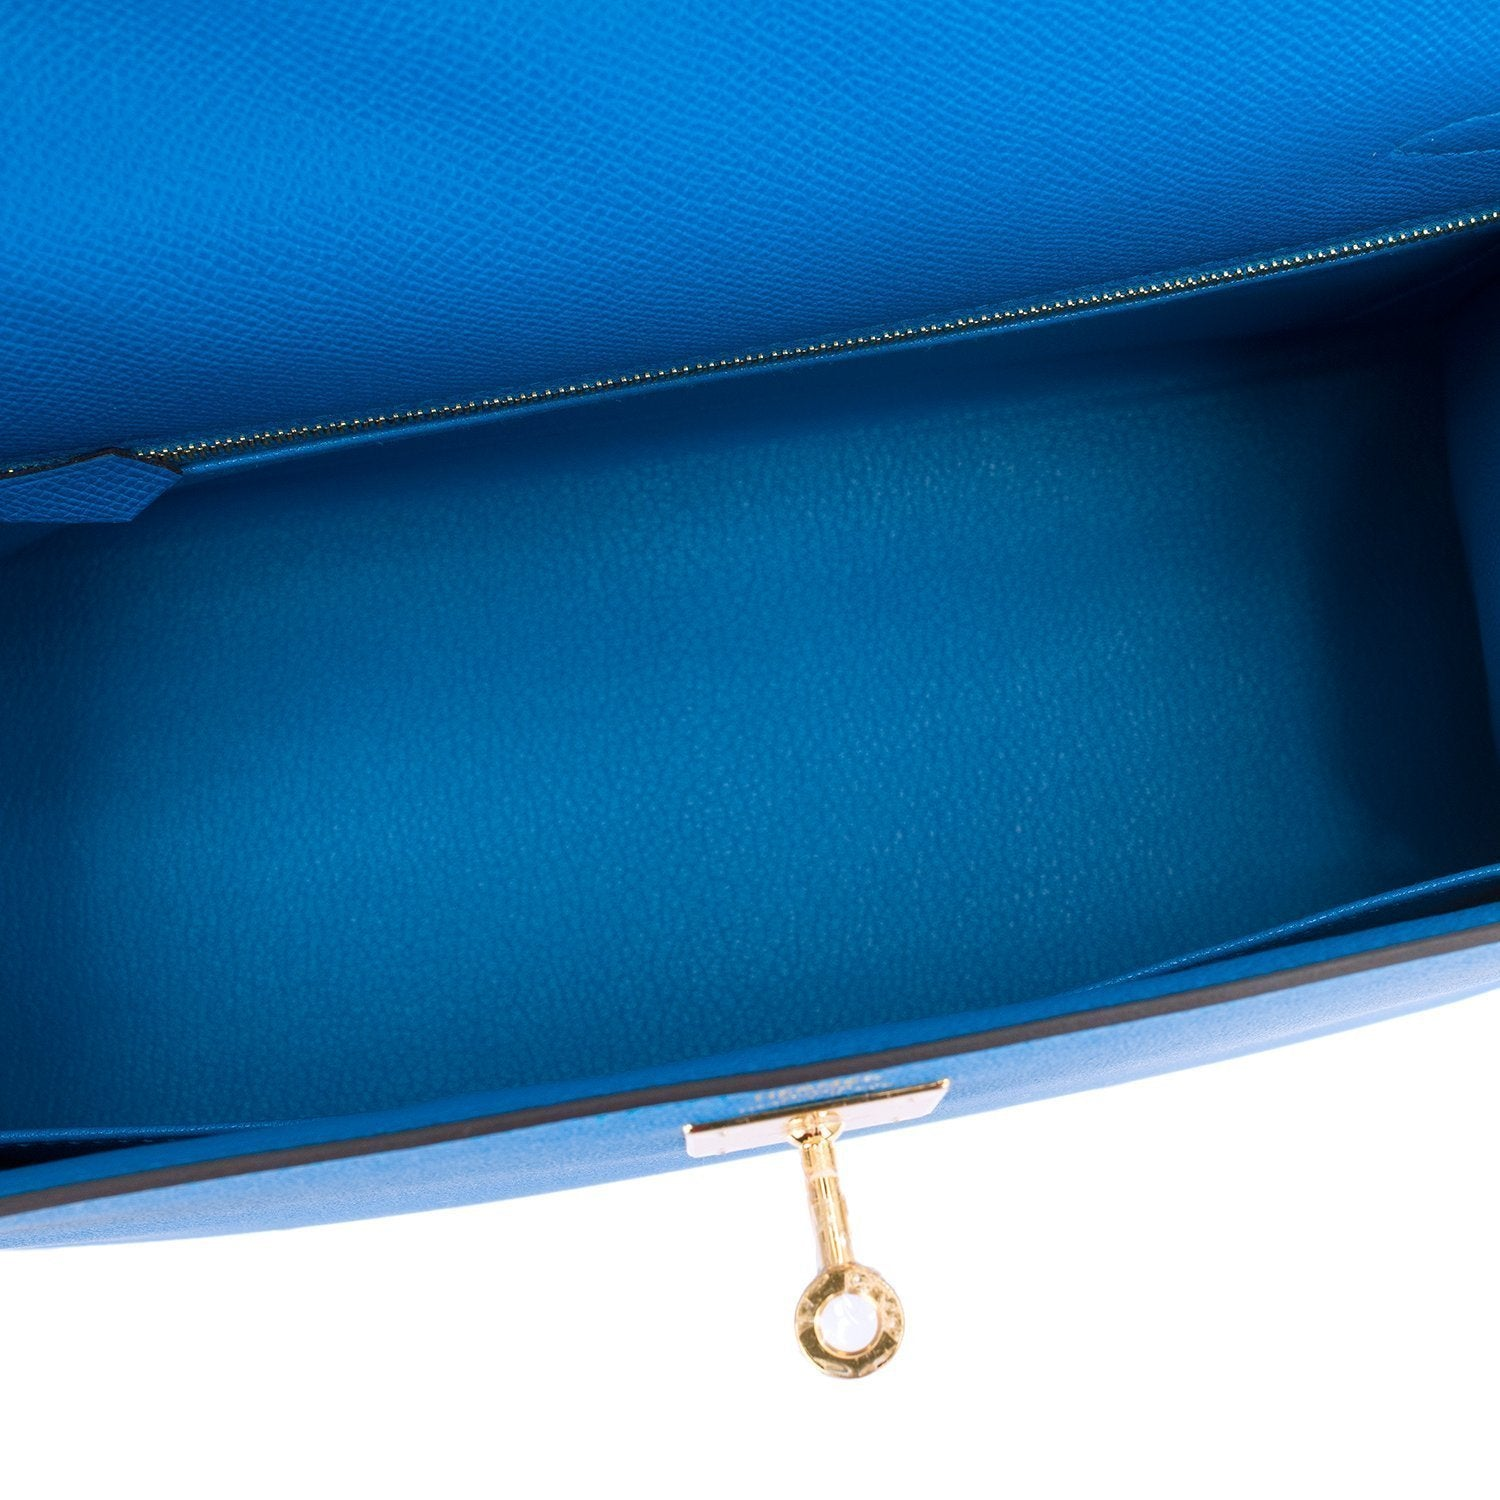 Hermes Blue Zanzibar Epsom Sellier Kelly 28Cm Gold Hardware Handbags